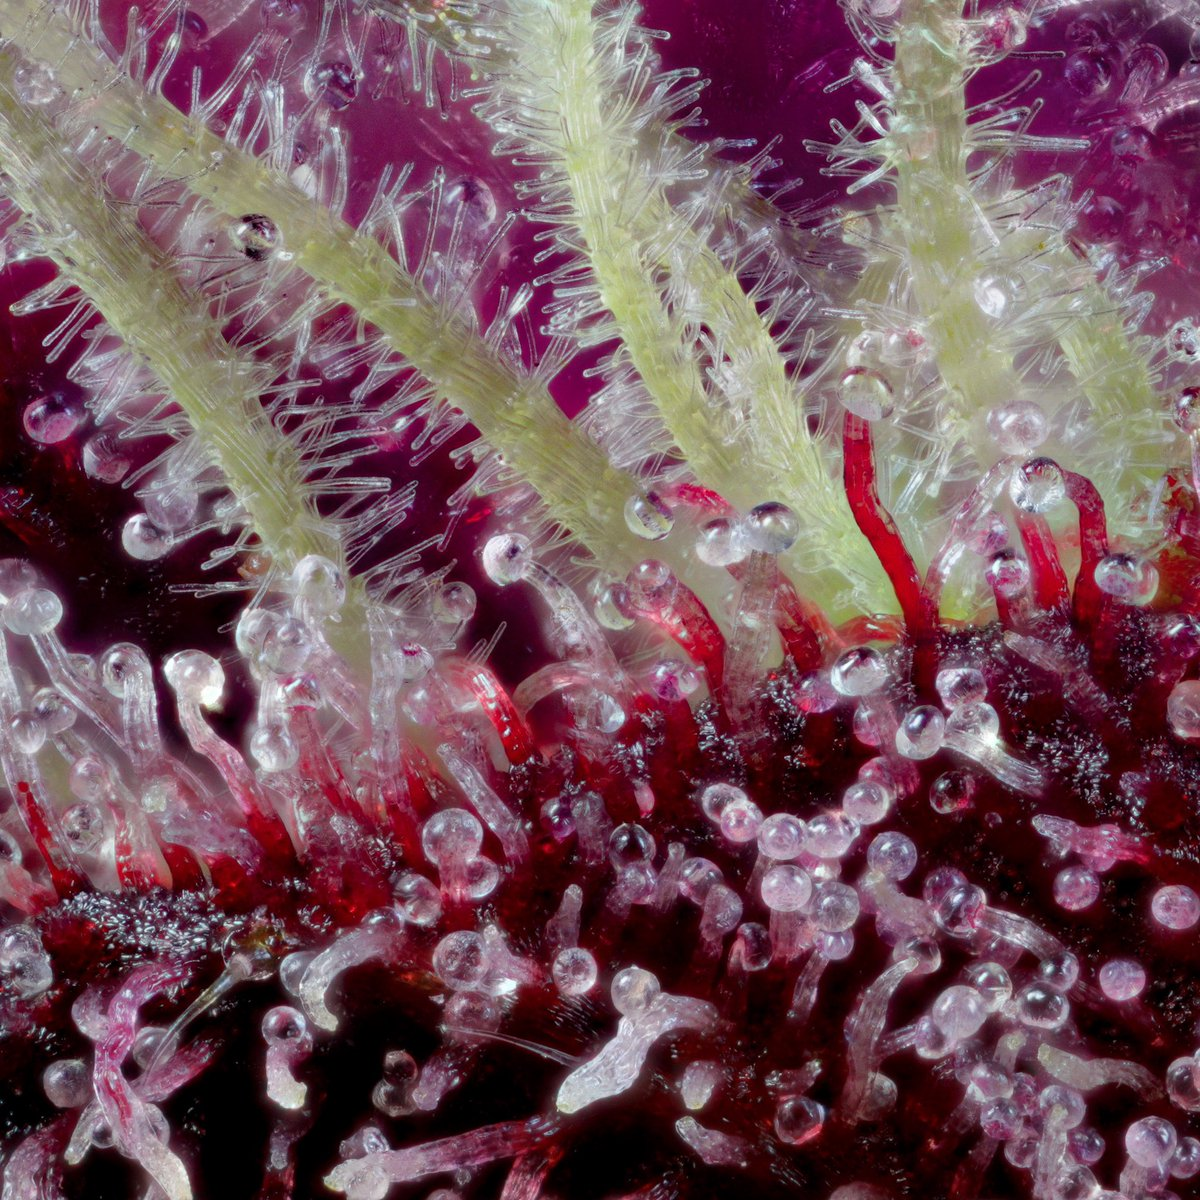 Anthocyanin in cannabis trichomes